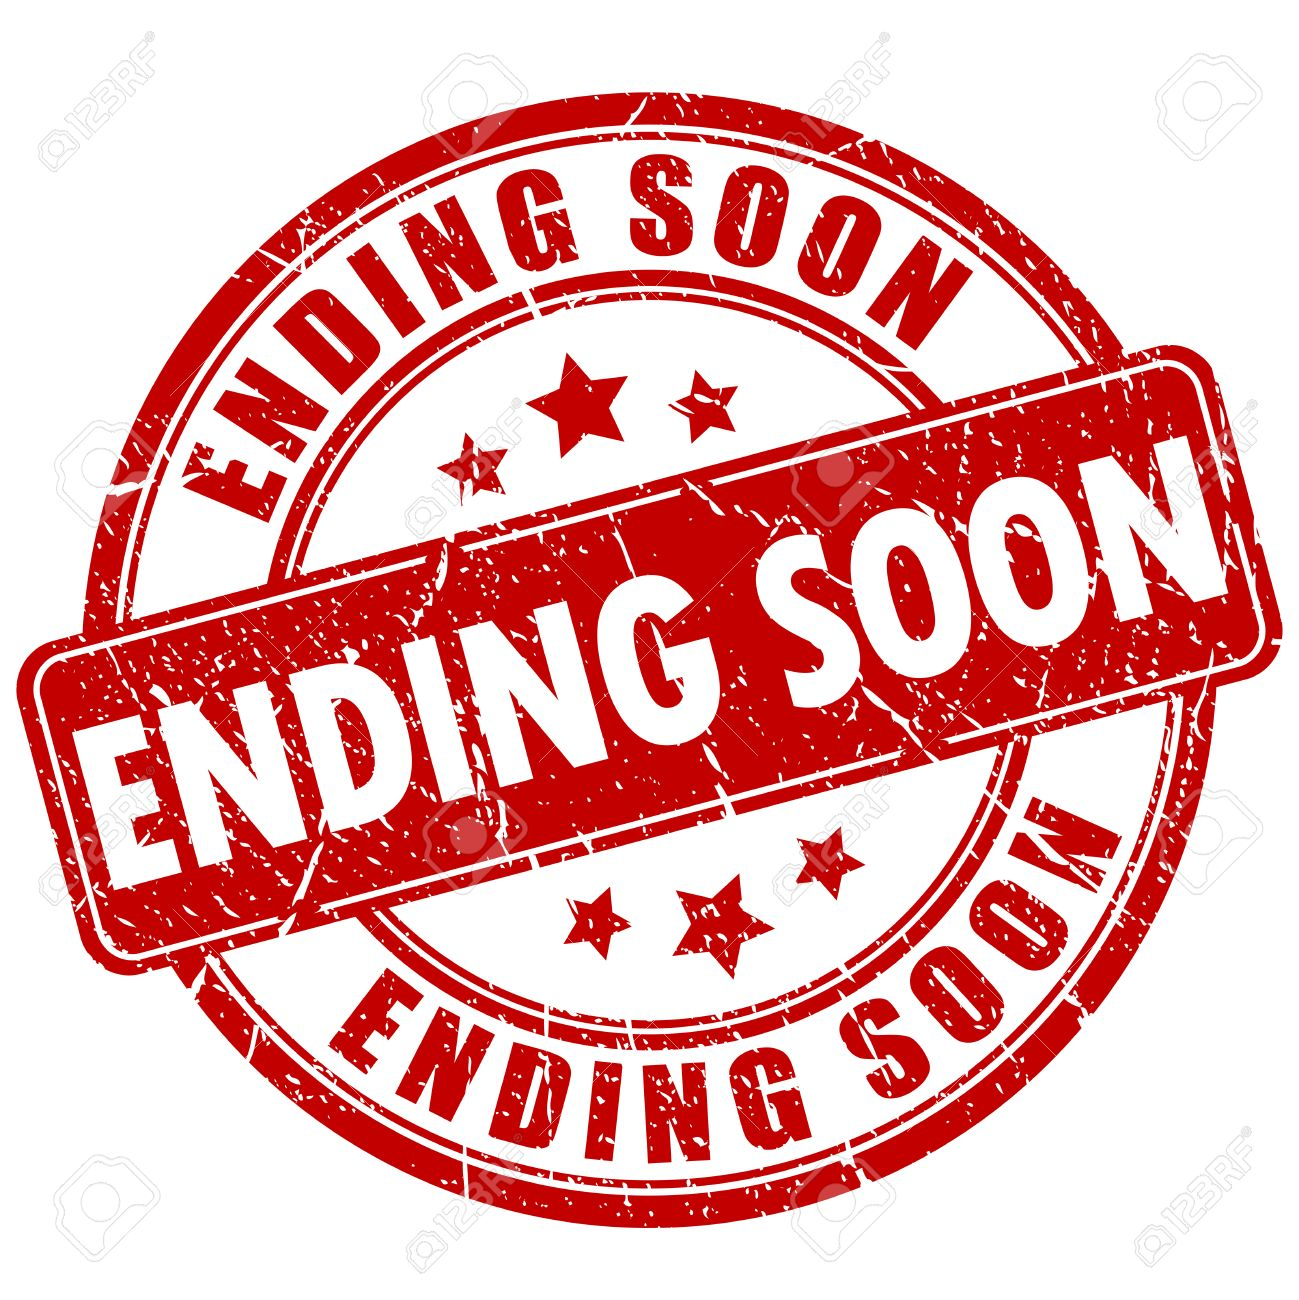 Ending soon rubber stamp - 53258433